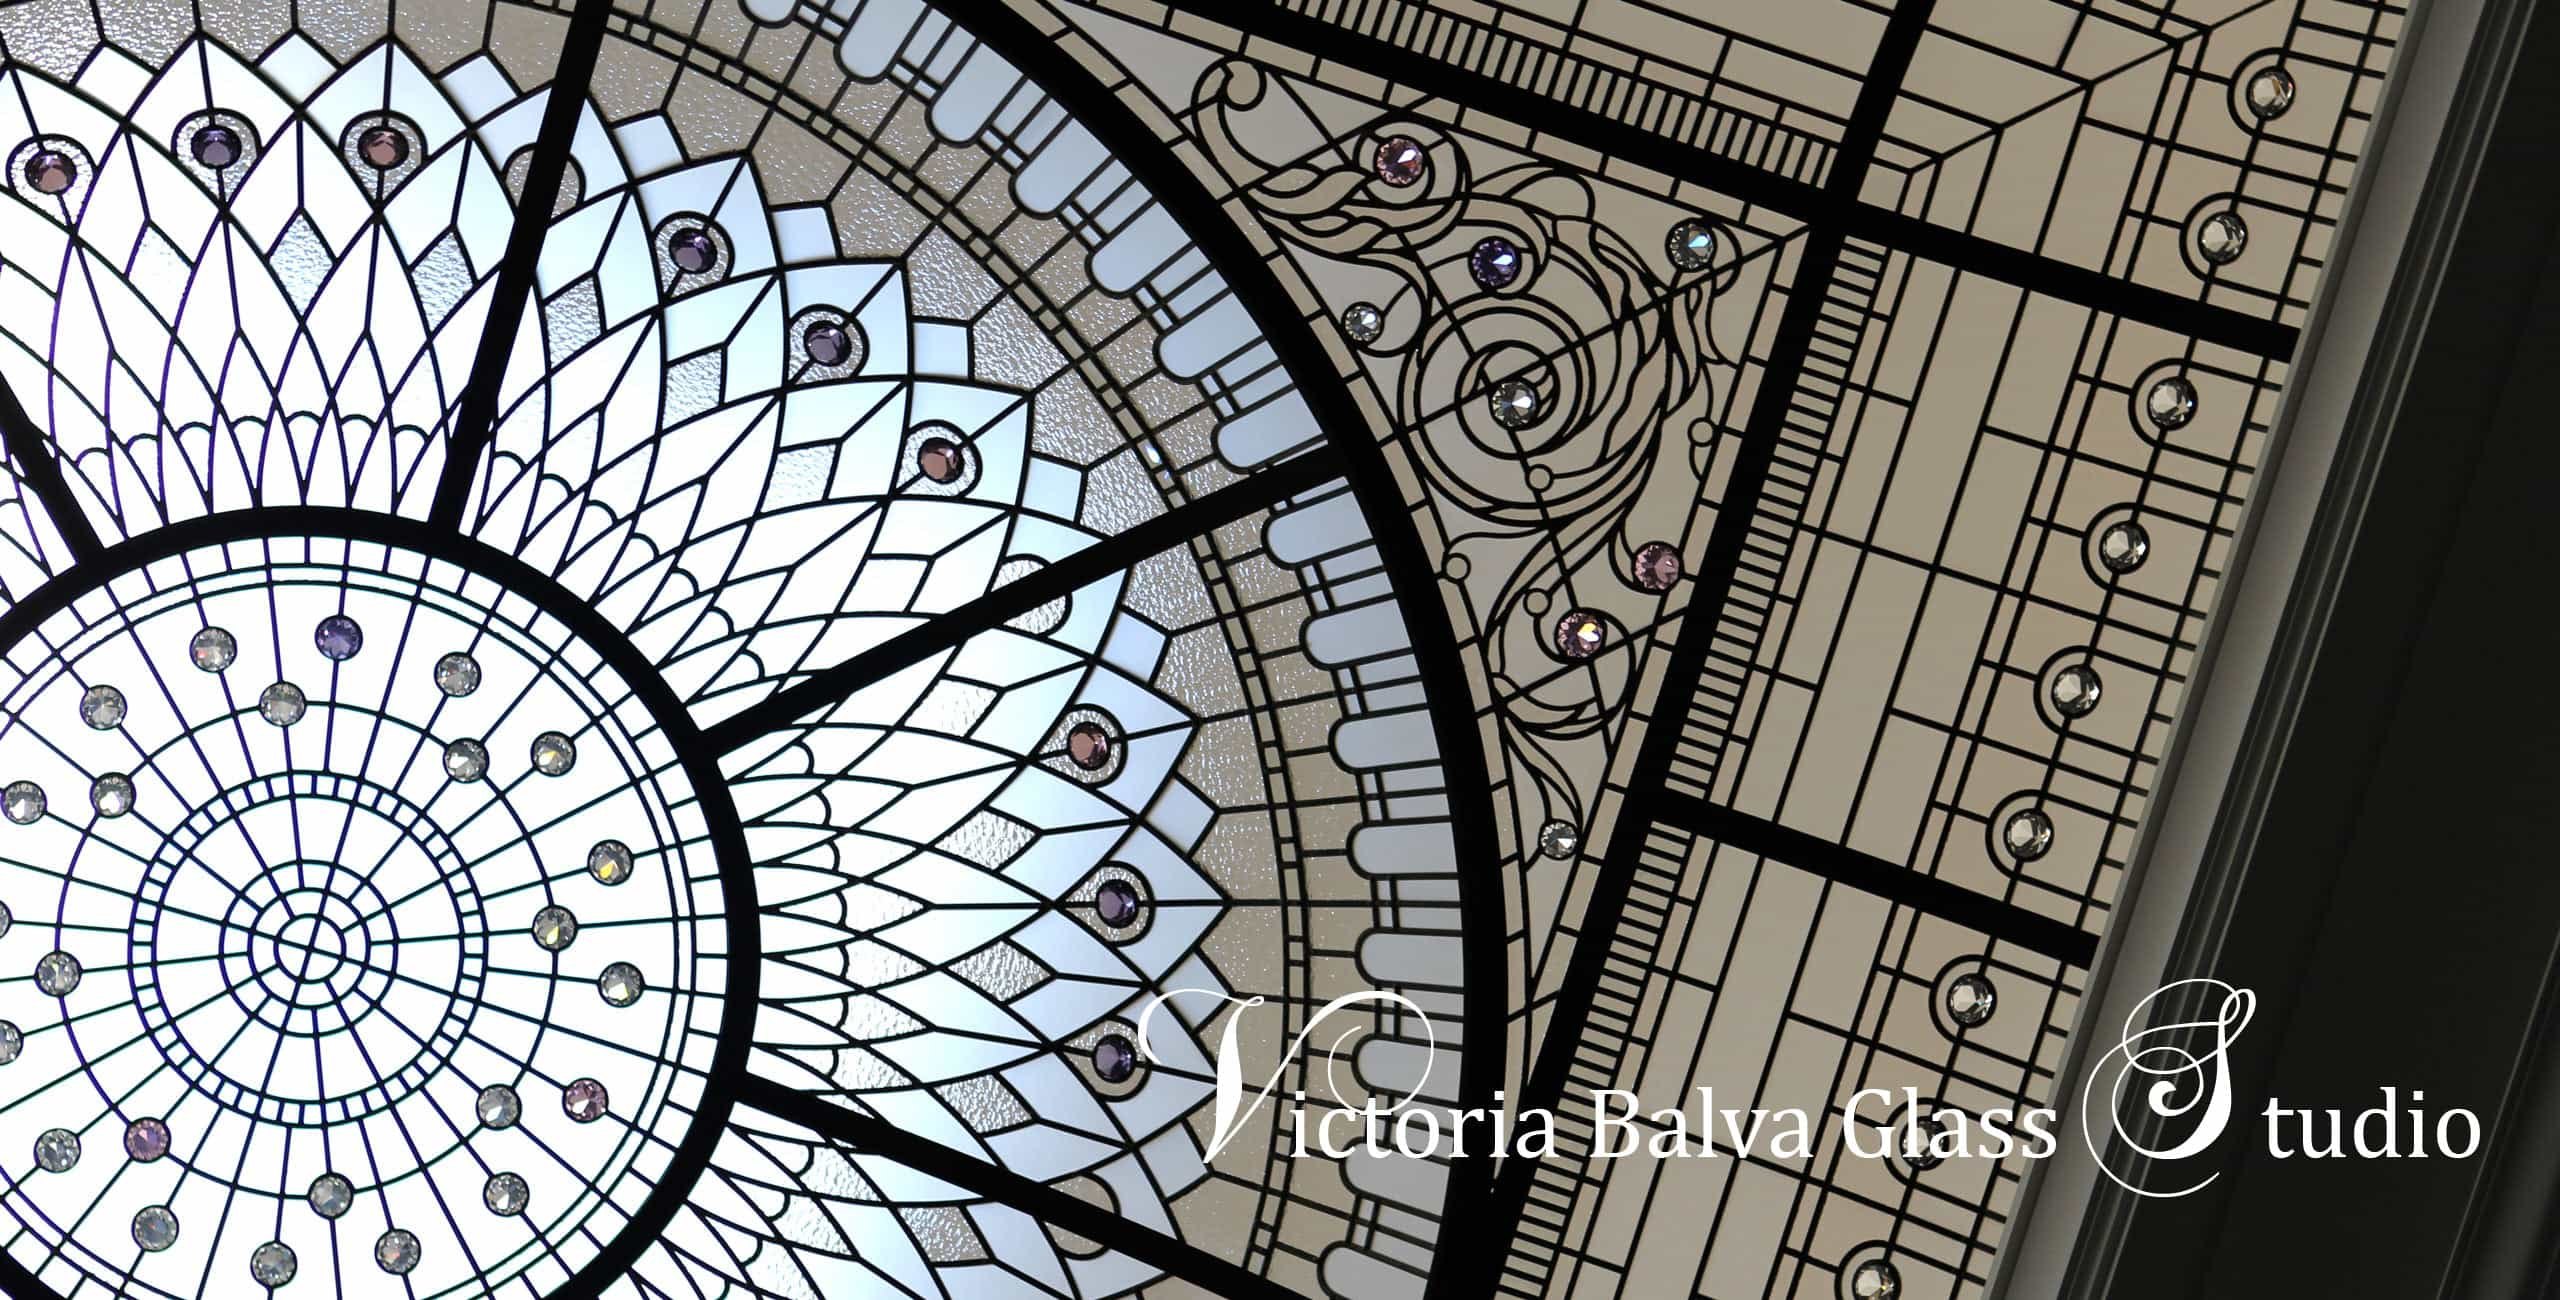 Custom stained leaded glass domed skylight inspired Hotel Plaza glass ceiling for custom built residential home. Classical design entrance hall with large decorative glass ceiling domed skylight custom designed by glass artist Victoria Balva